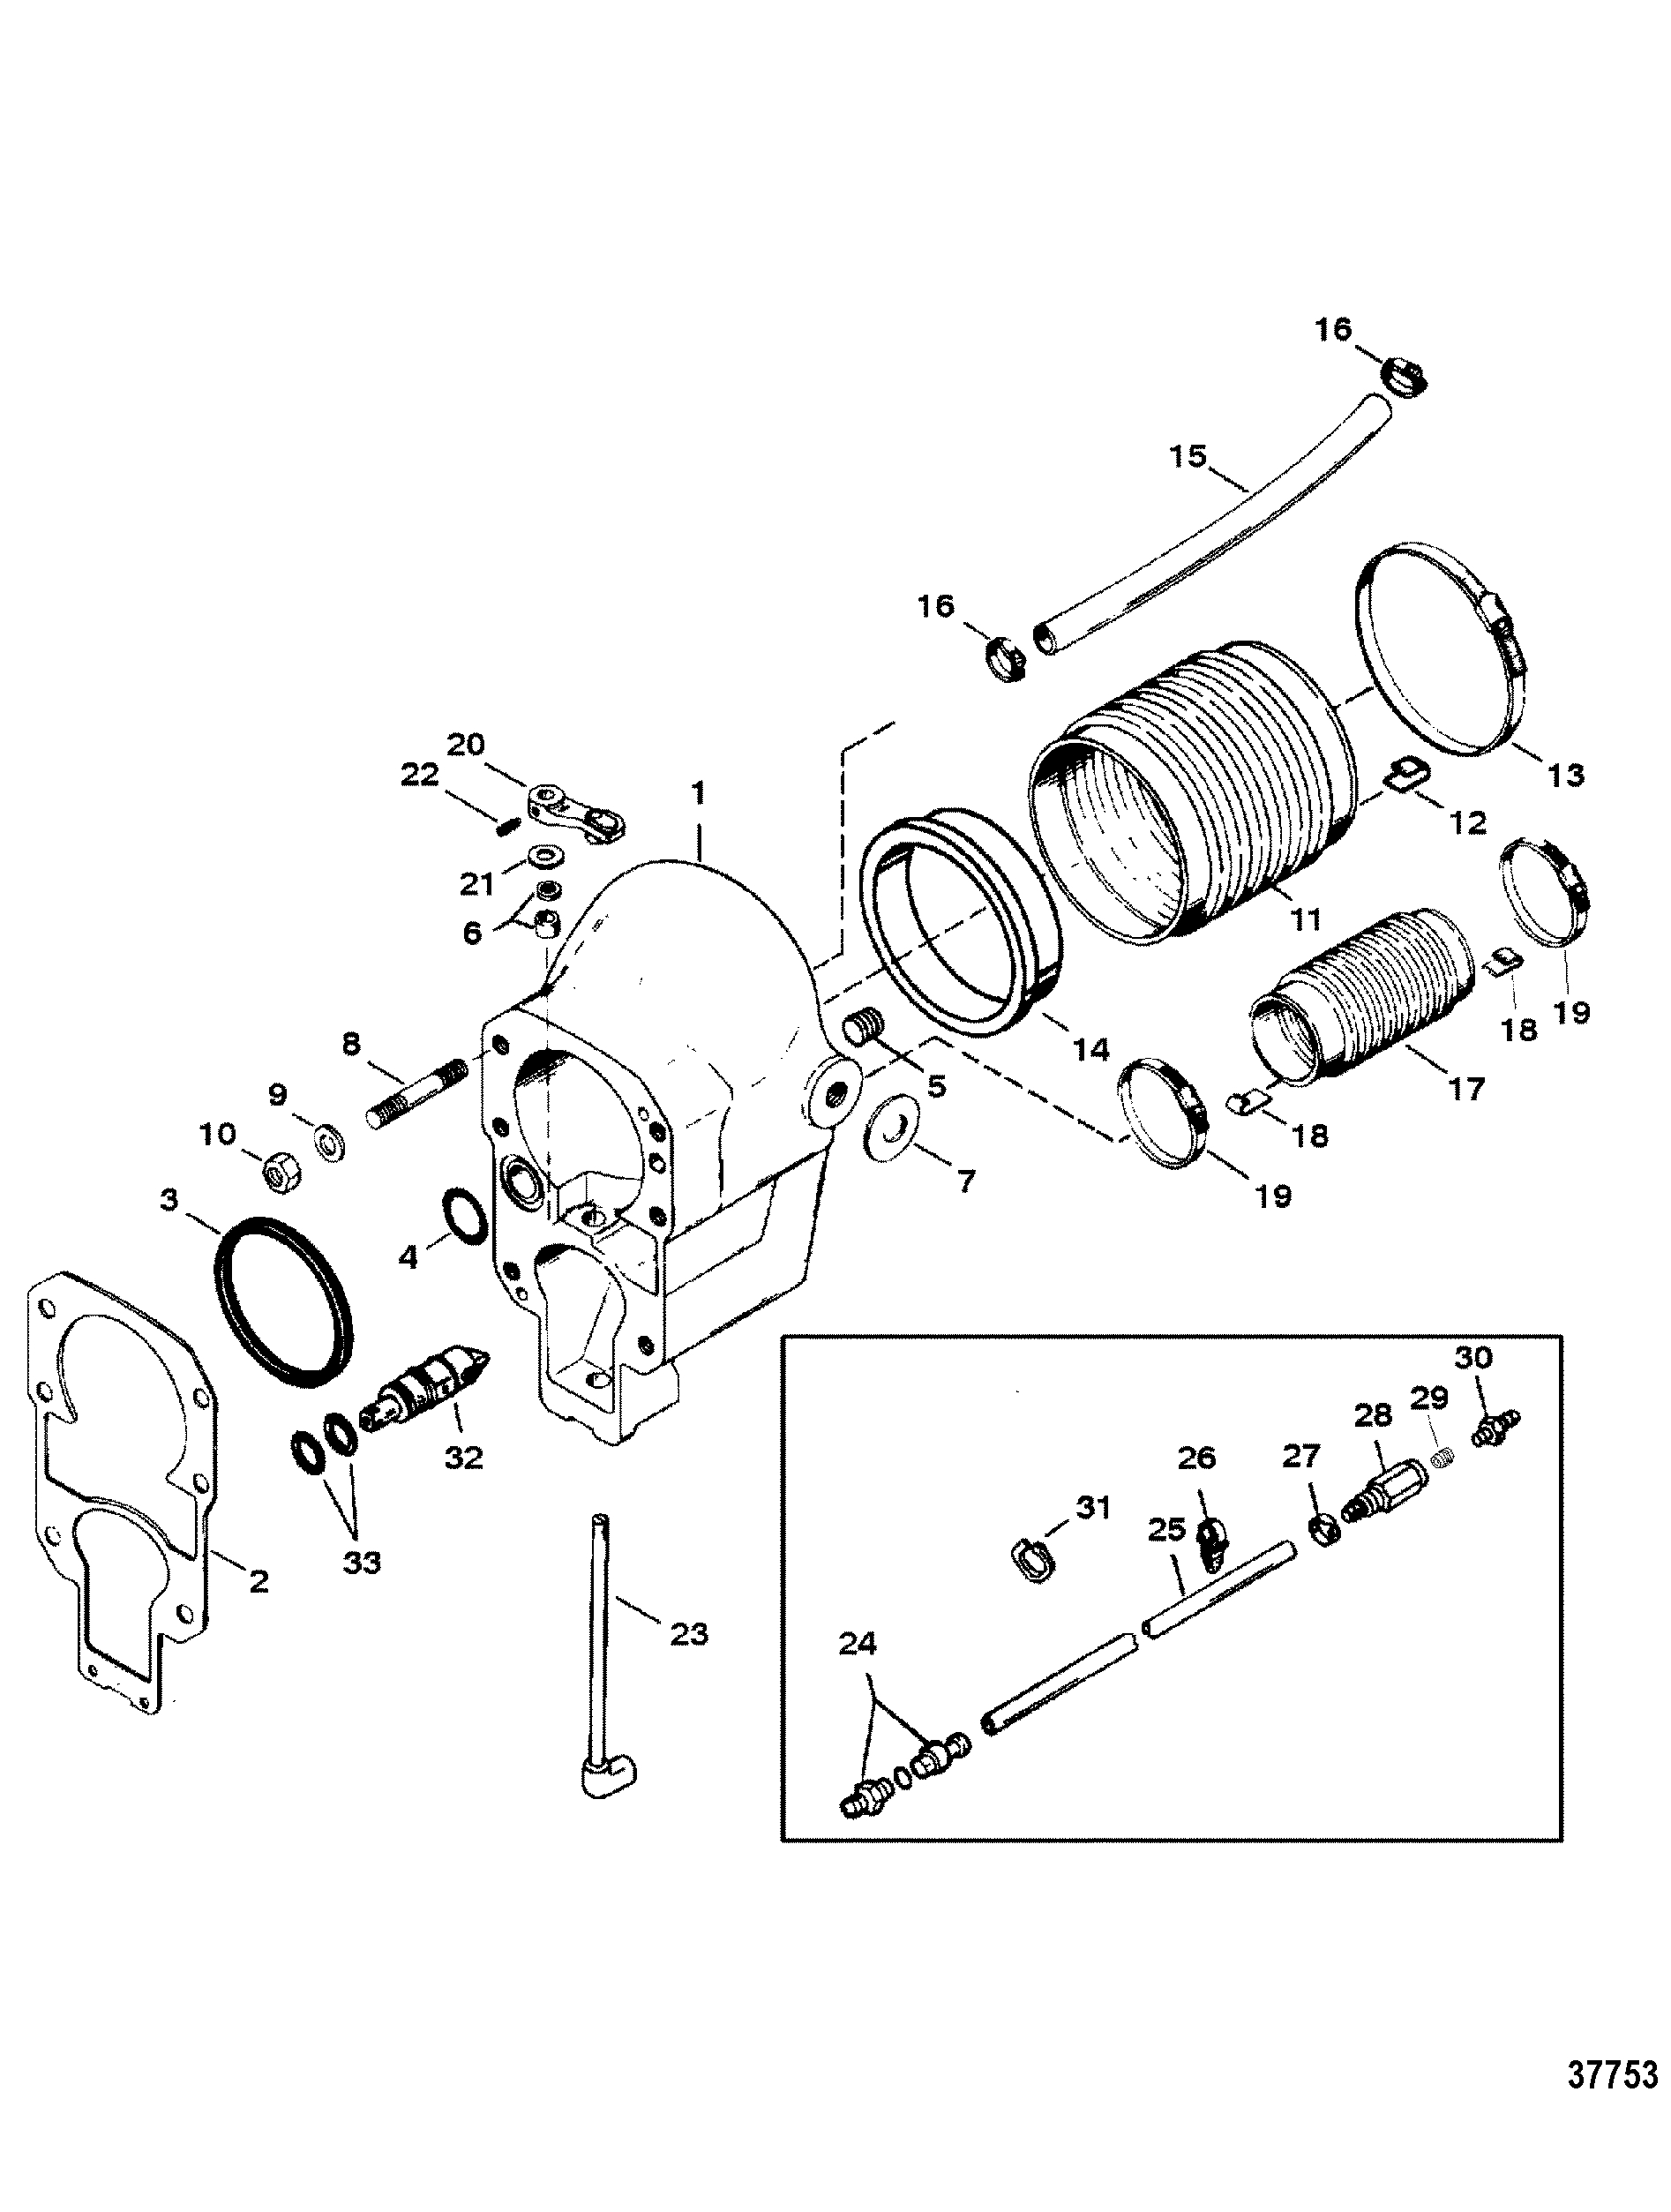 alpha one sterndrive parts diagram 1990 ford fuel system mercruiser outdrive automotive